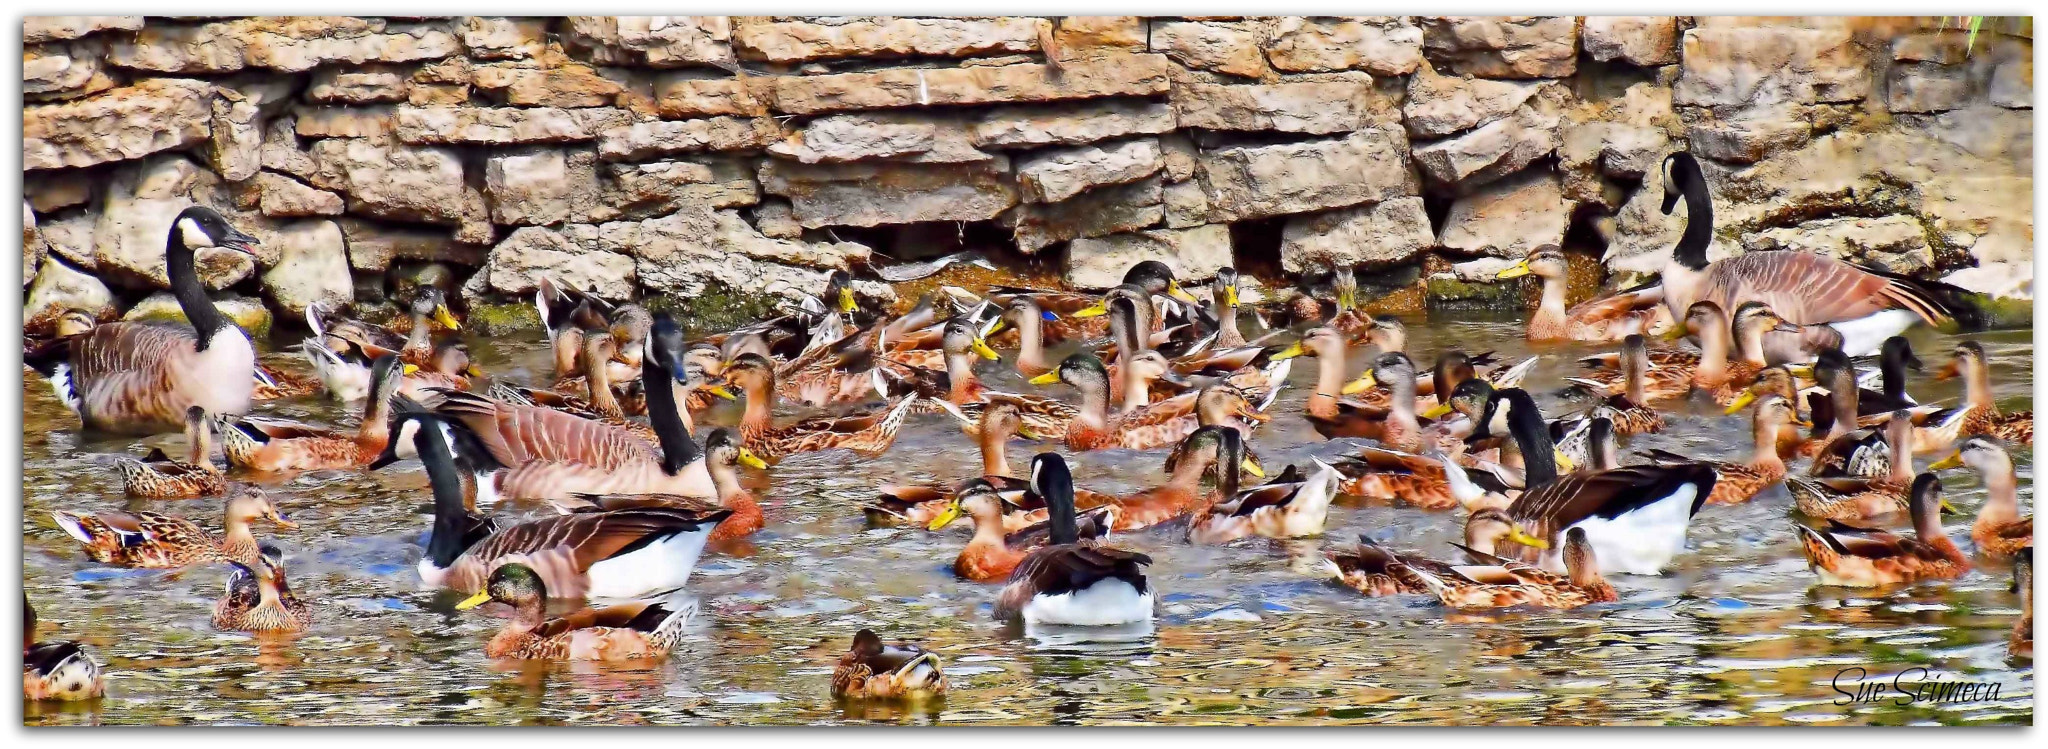 Photograph Rush hour at the ole swimmin' hole by Sue  Scimeca on 500px